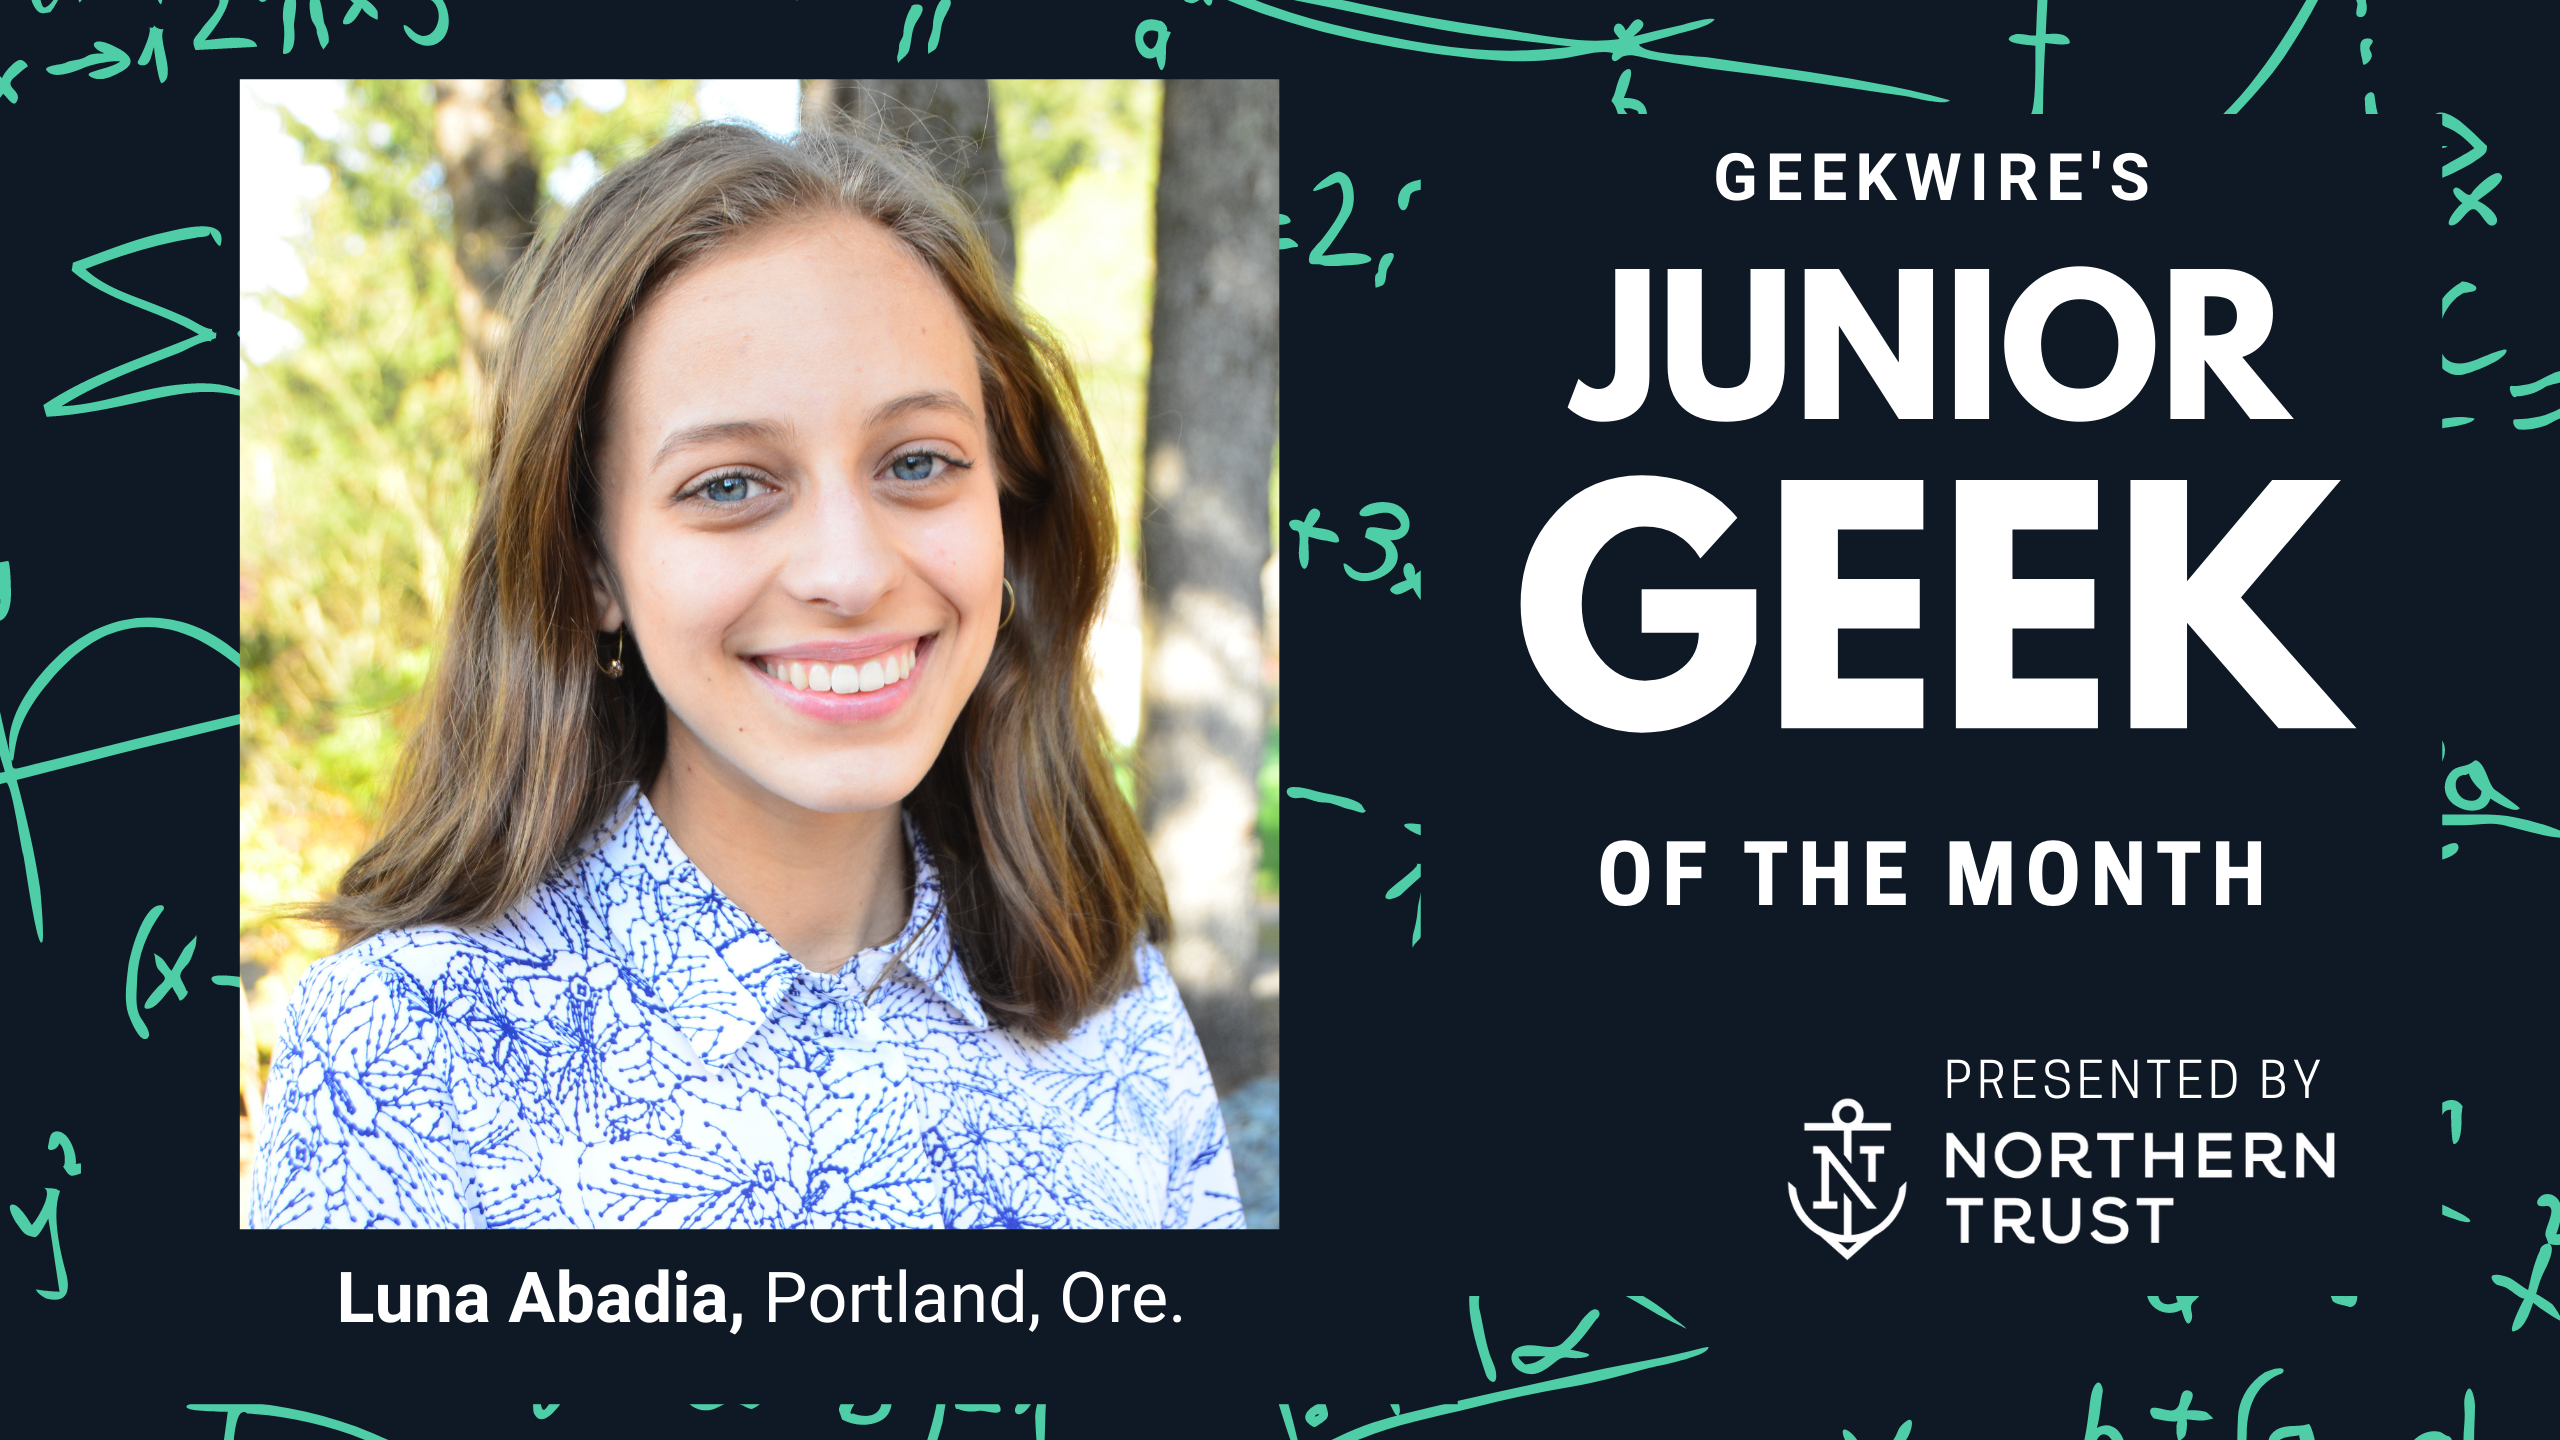 Junior Geek of the Month: Luna Abadia turned her climate change fears into action and solutions - GeekWire